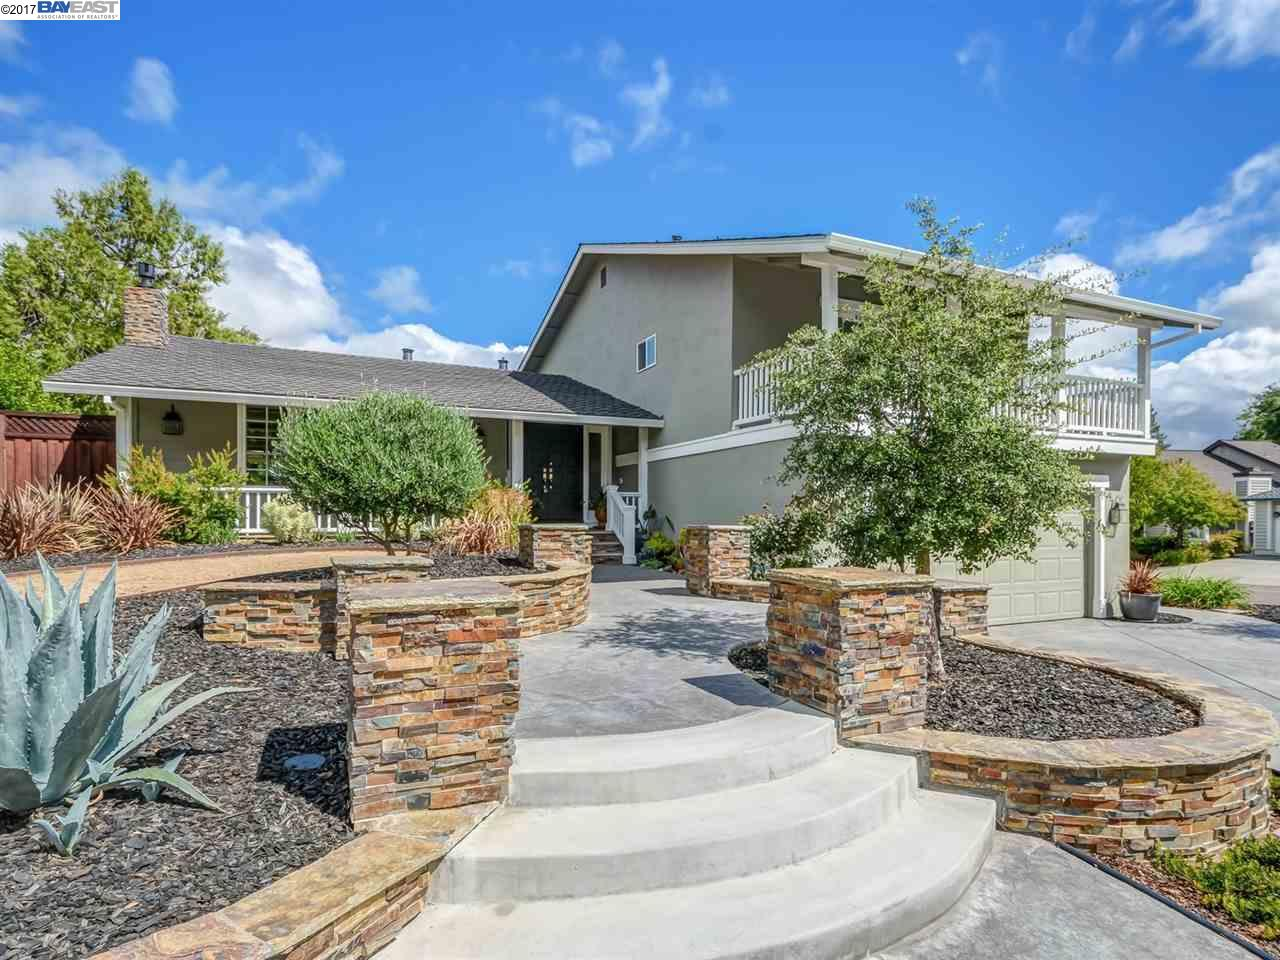 Single Family Home for Sale at 4909 Forest Hill Drive 4909 Forest Hill Drive Pleasanton, California 94588 United States